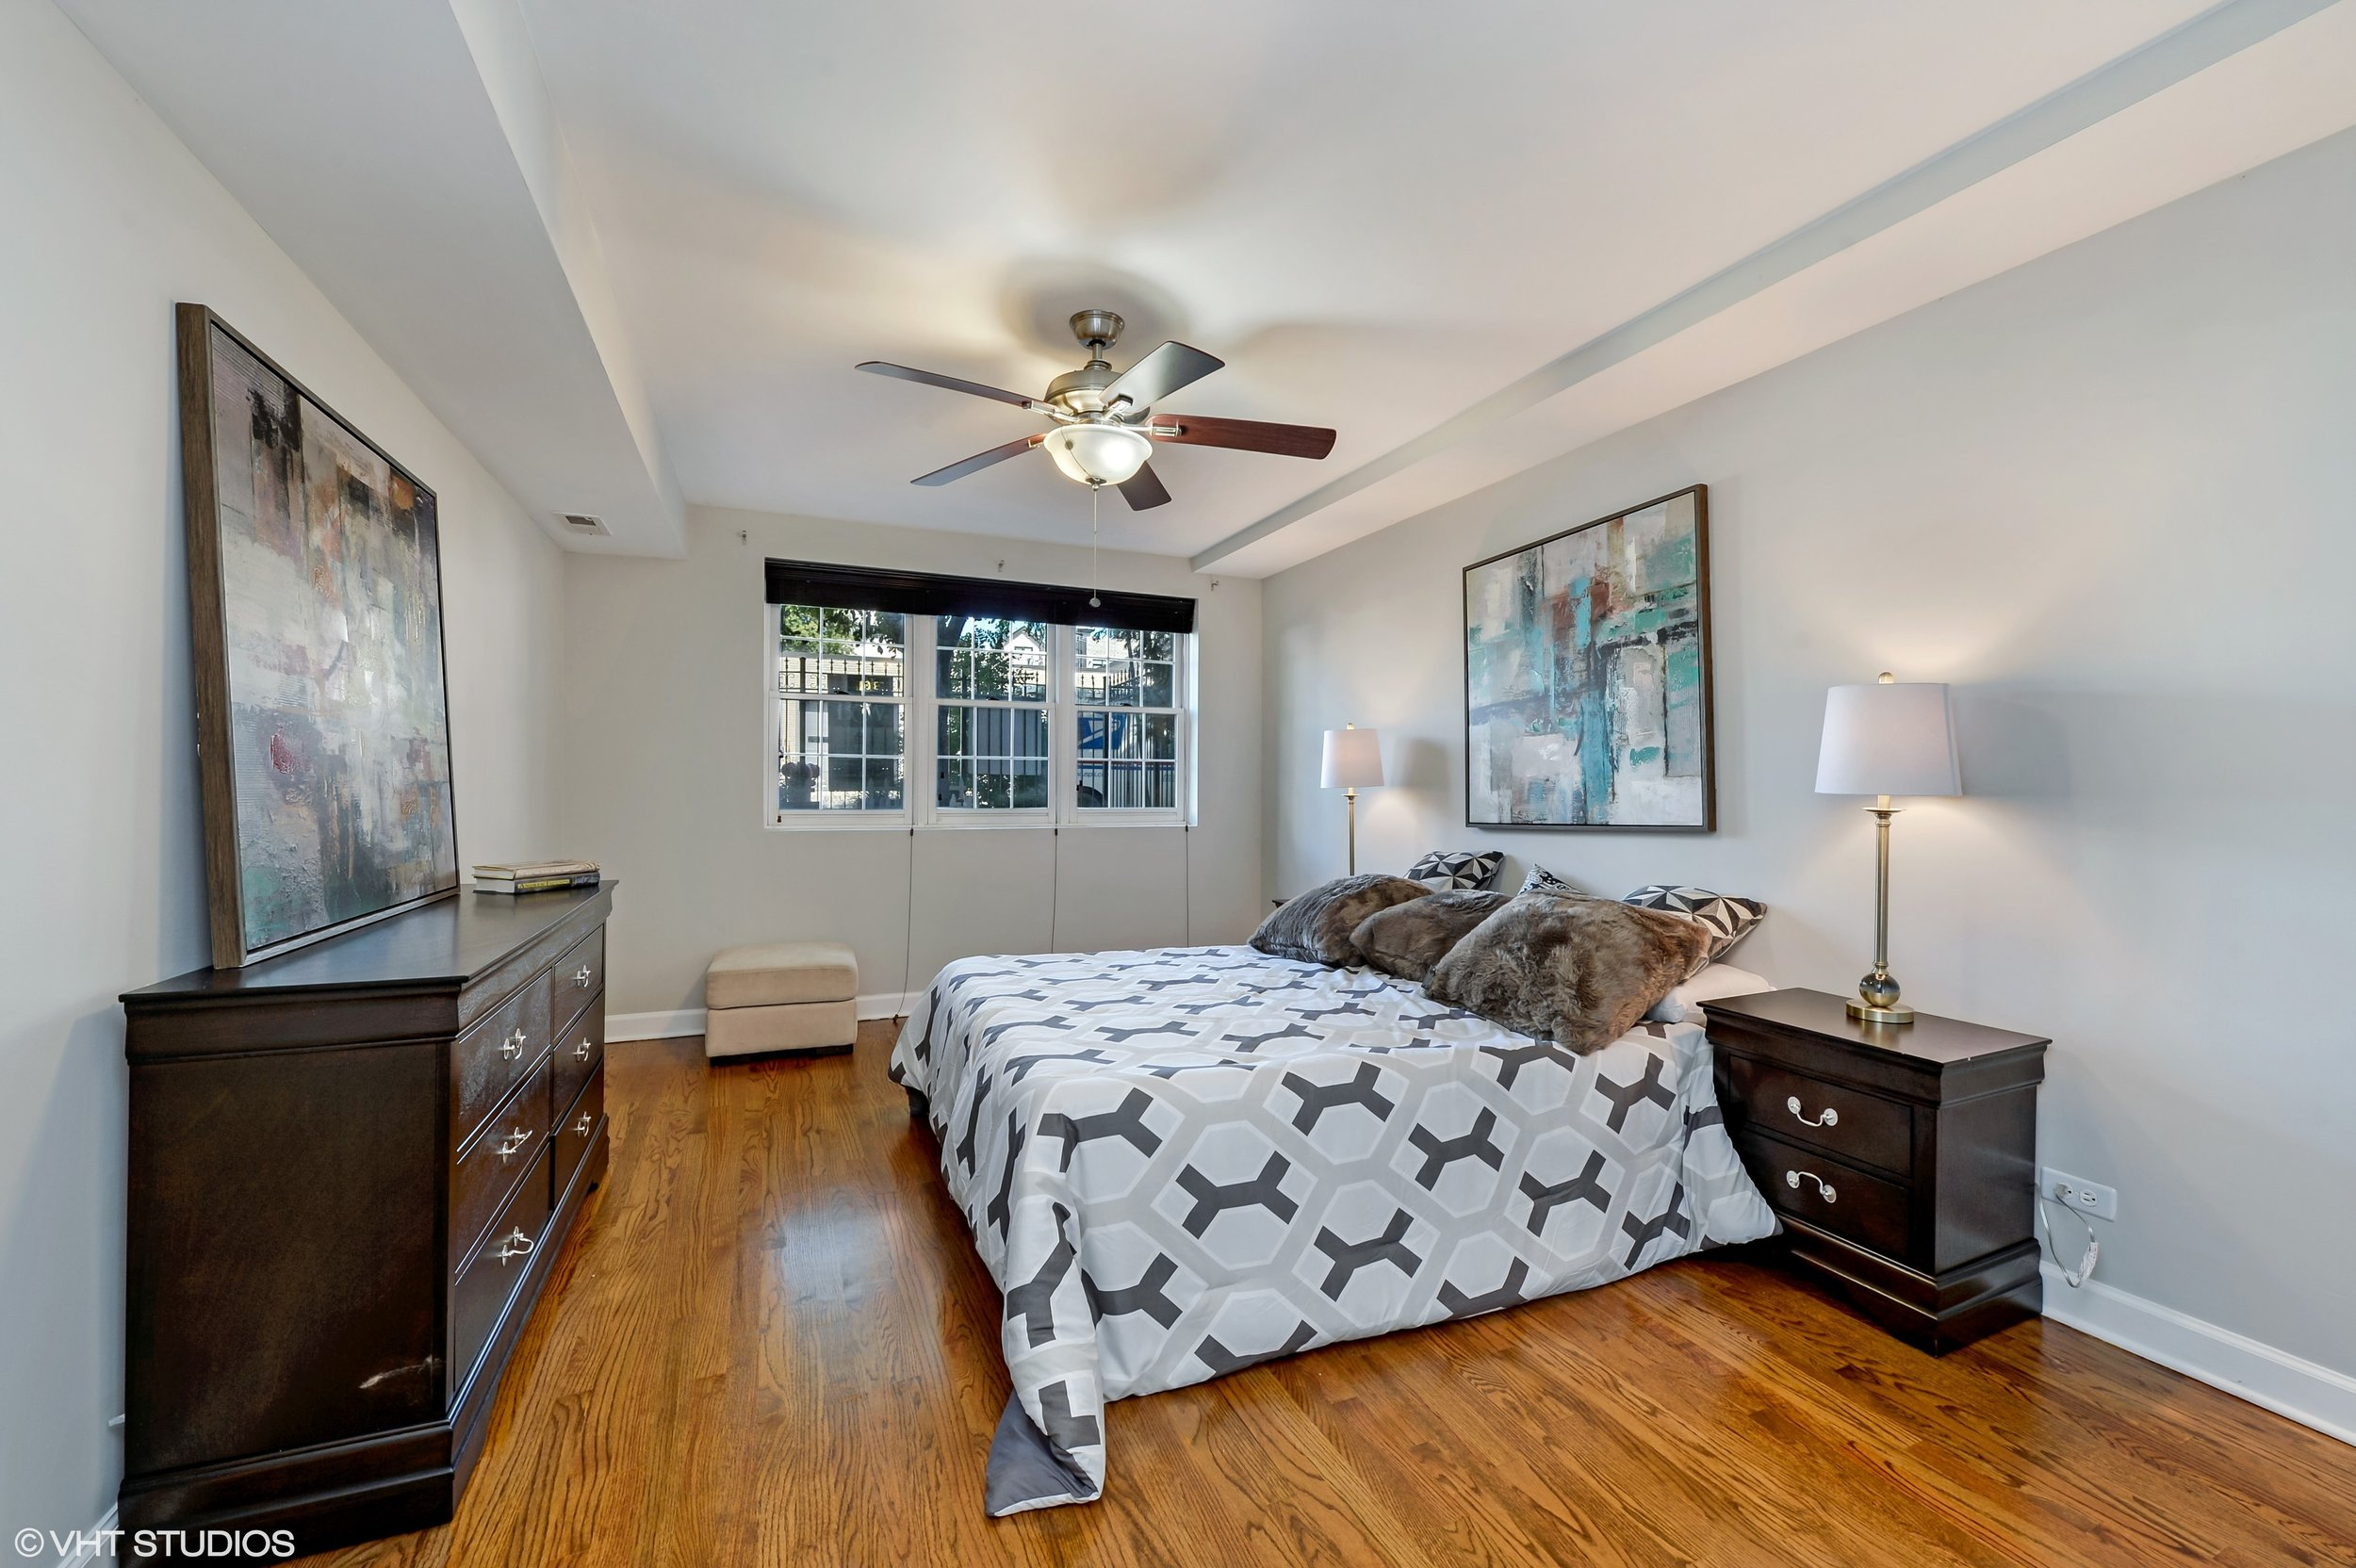 15_942NWoodStreet_Unit1_154_3rdBedroom_HiRes.jpg